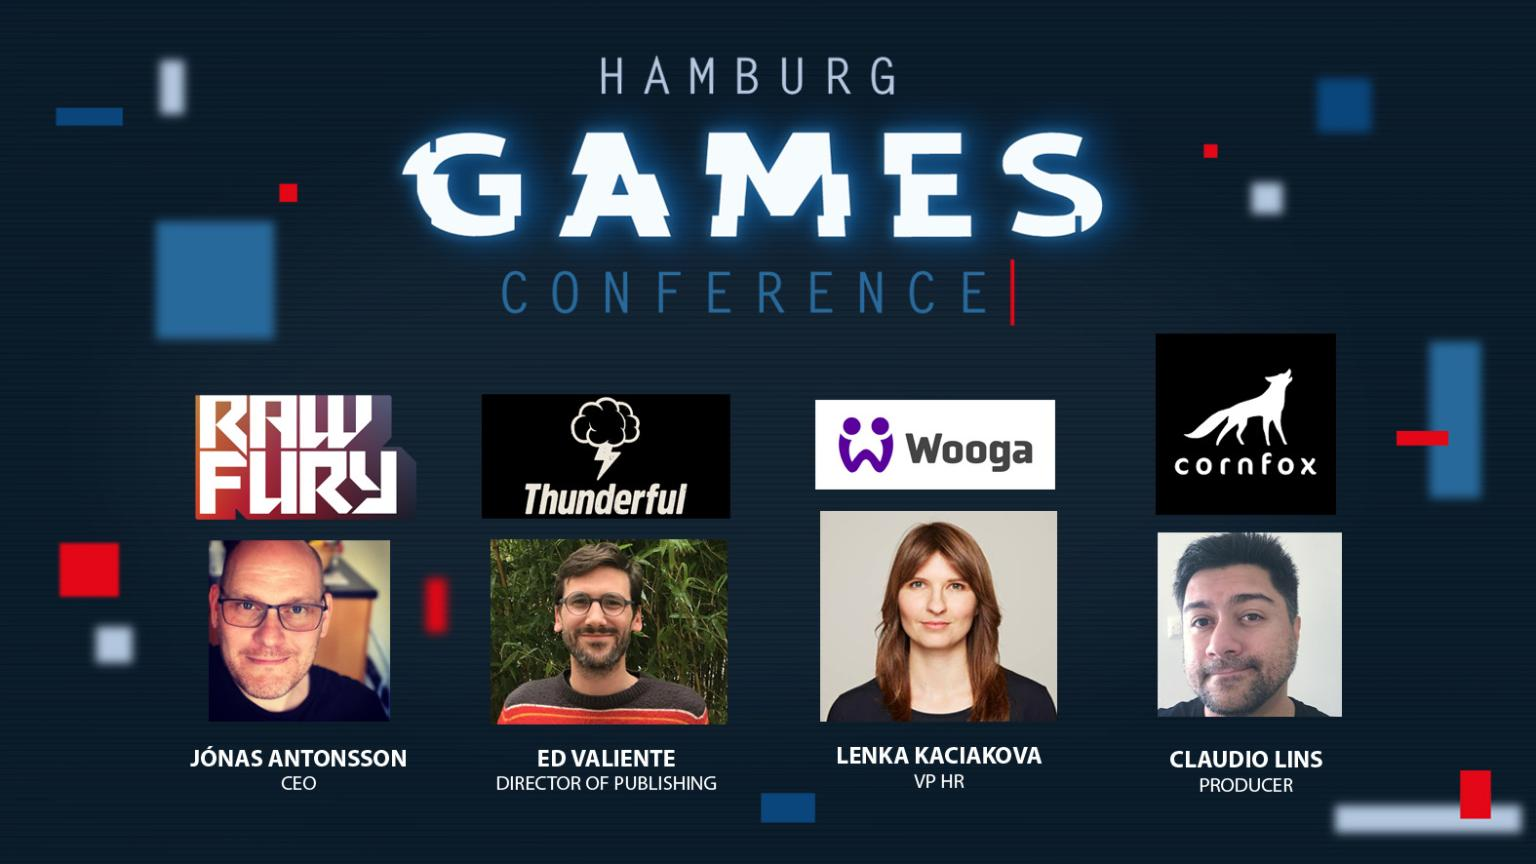 HANSEPARTNER: Die Hamburg Games Conference